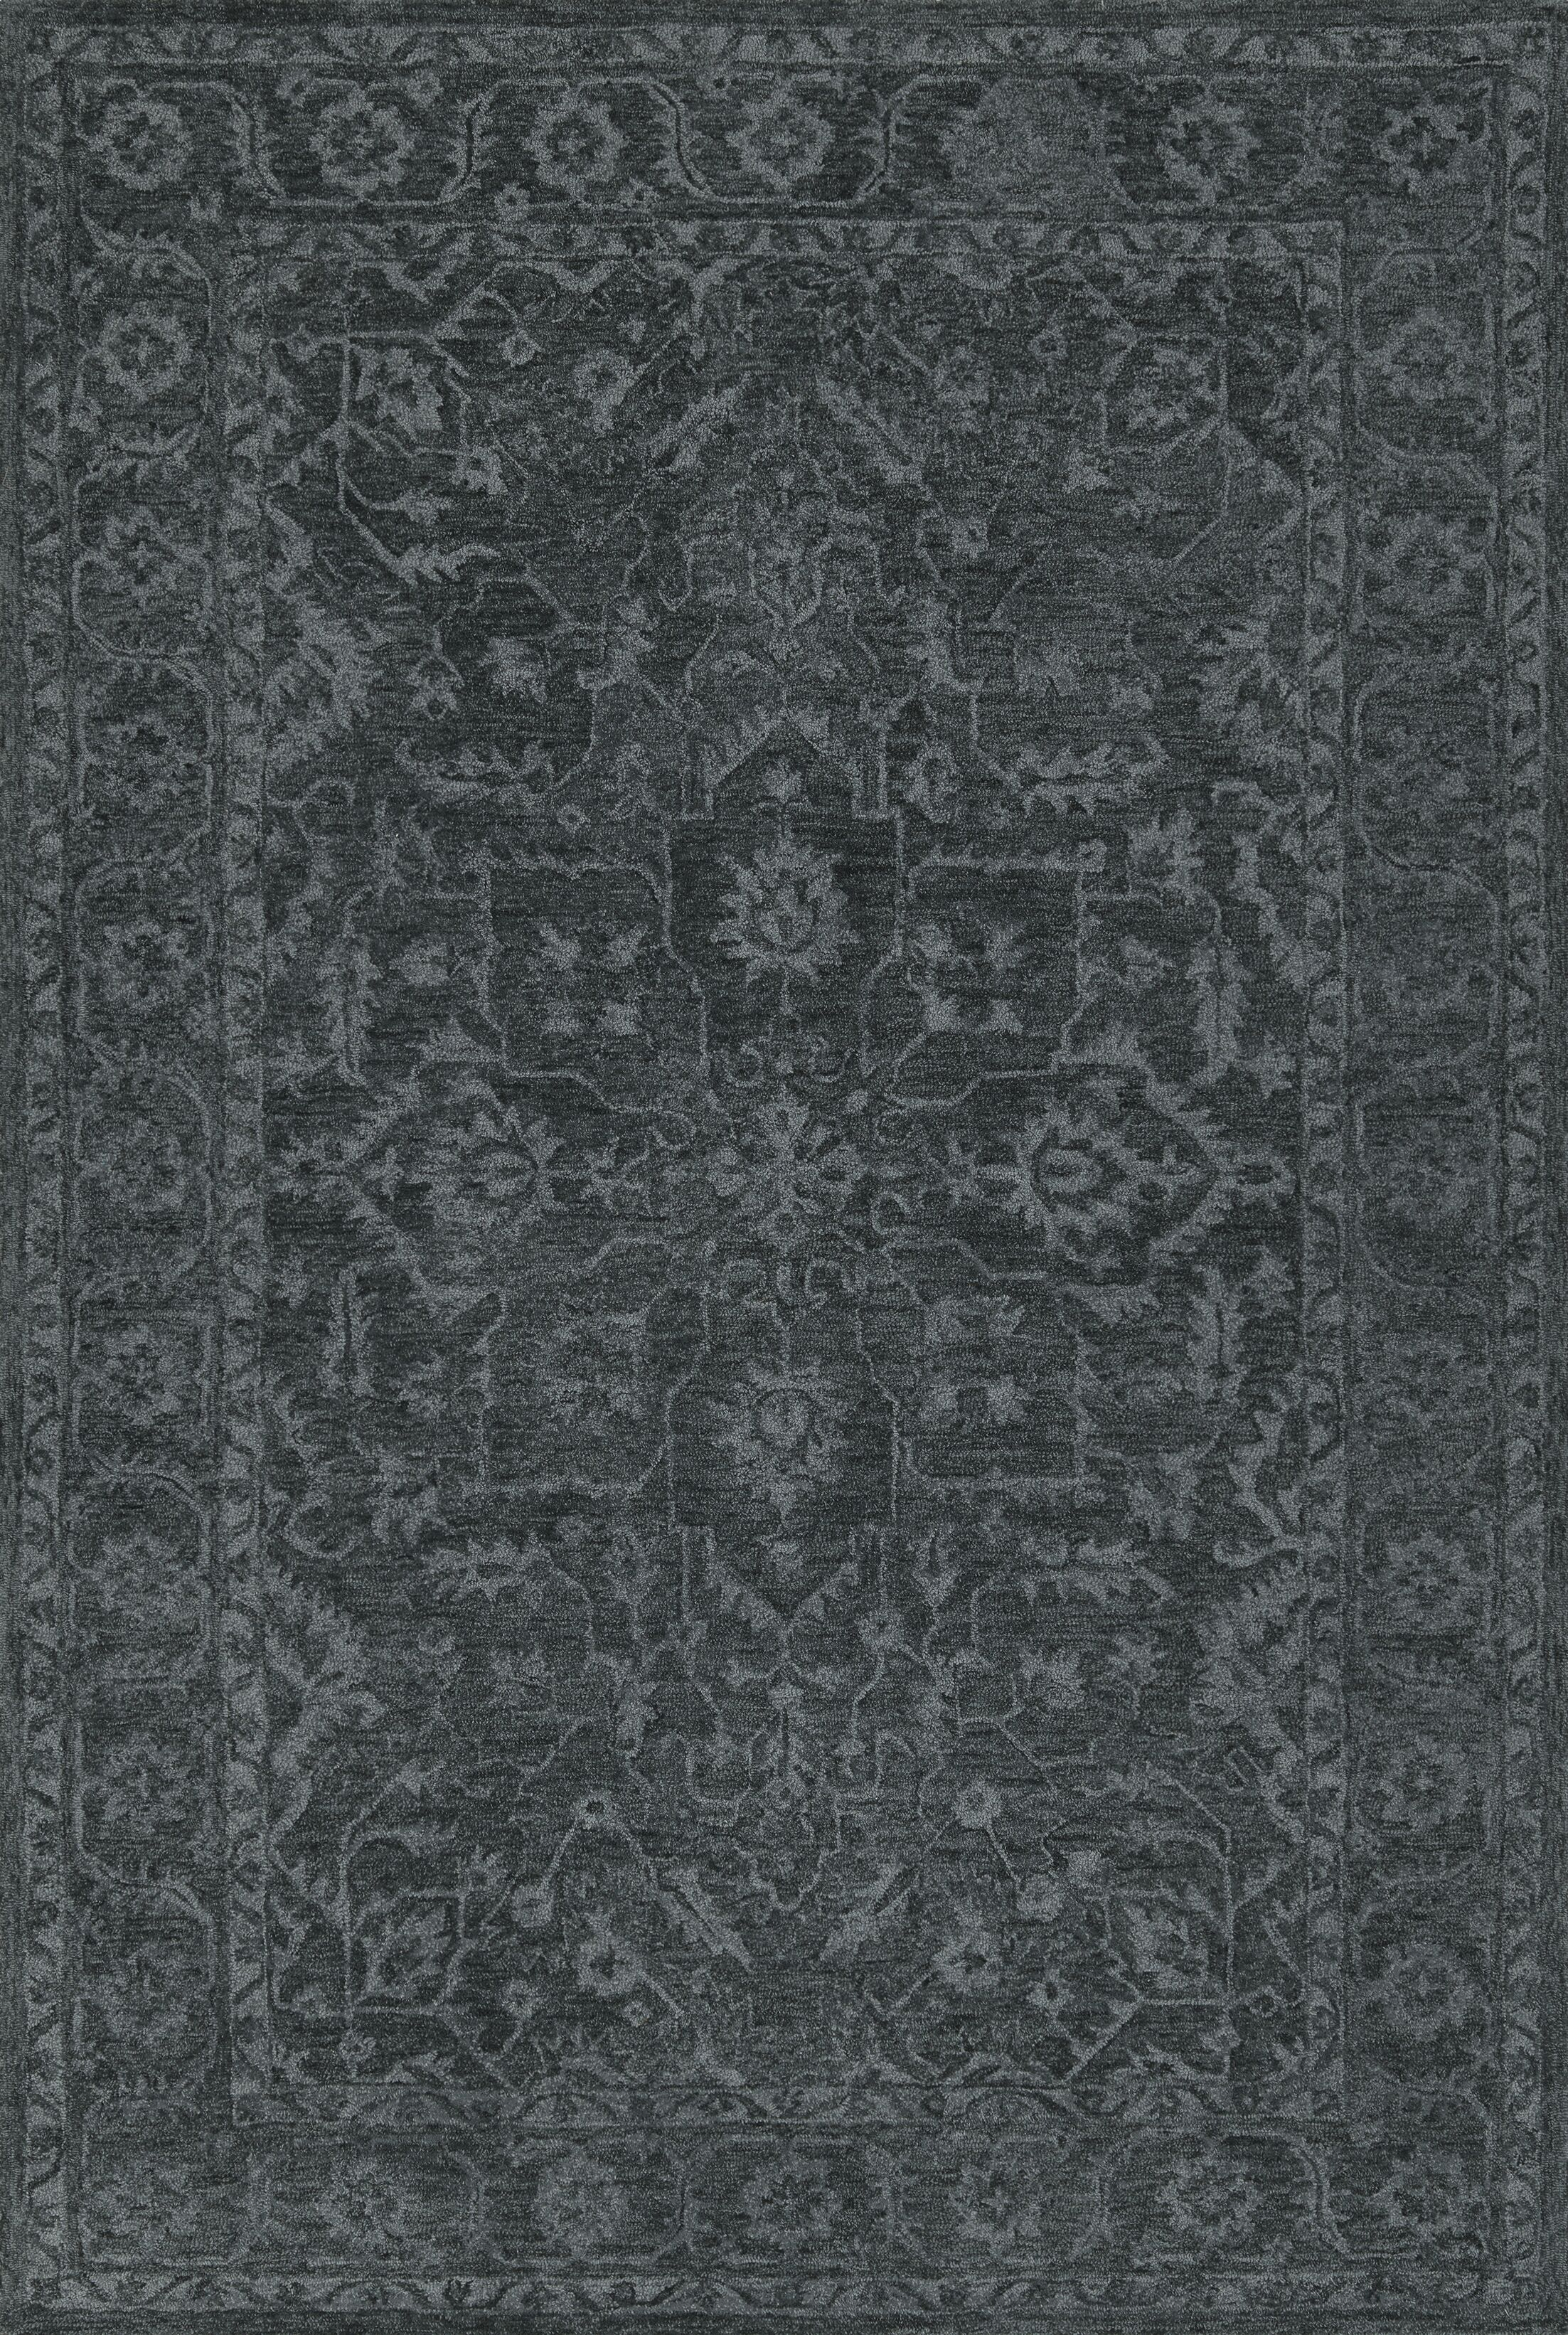 Chatmon Hand-Tufted Wool Midnight Area Rug Rug Size: Rectangle 9' x 13'